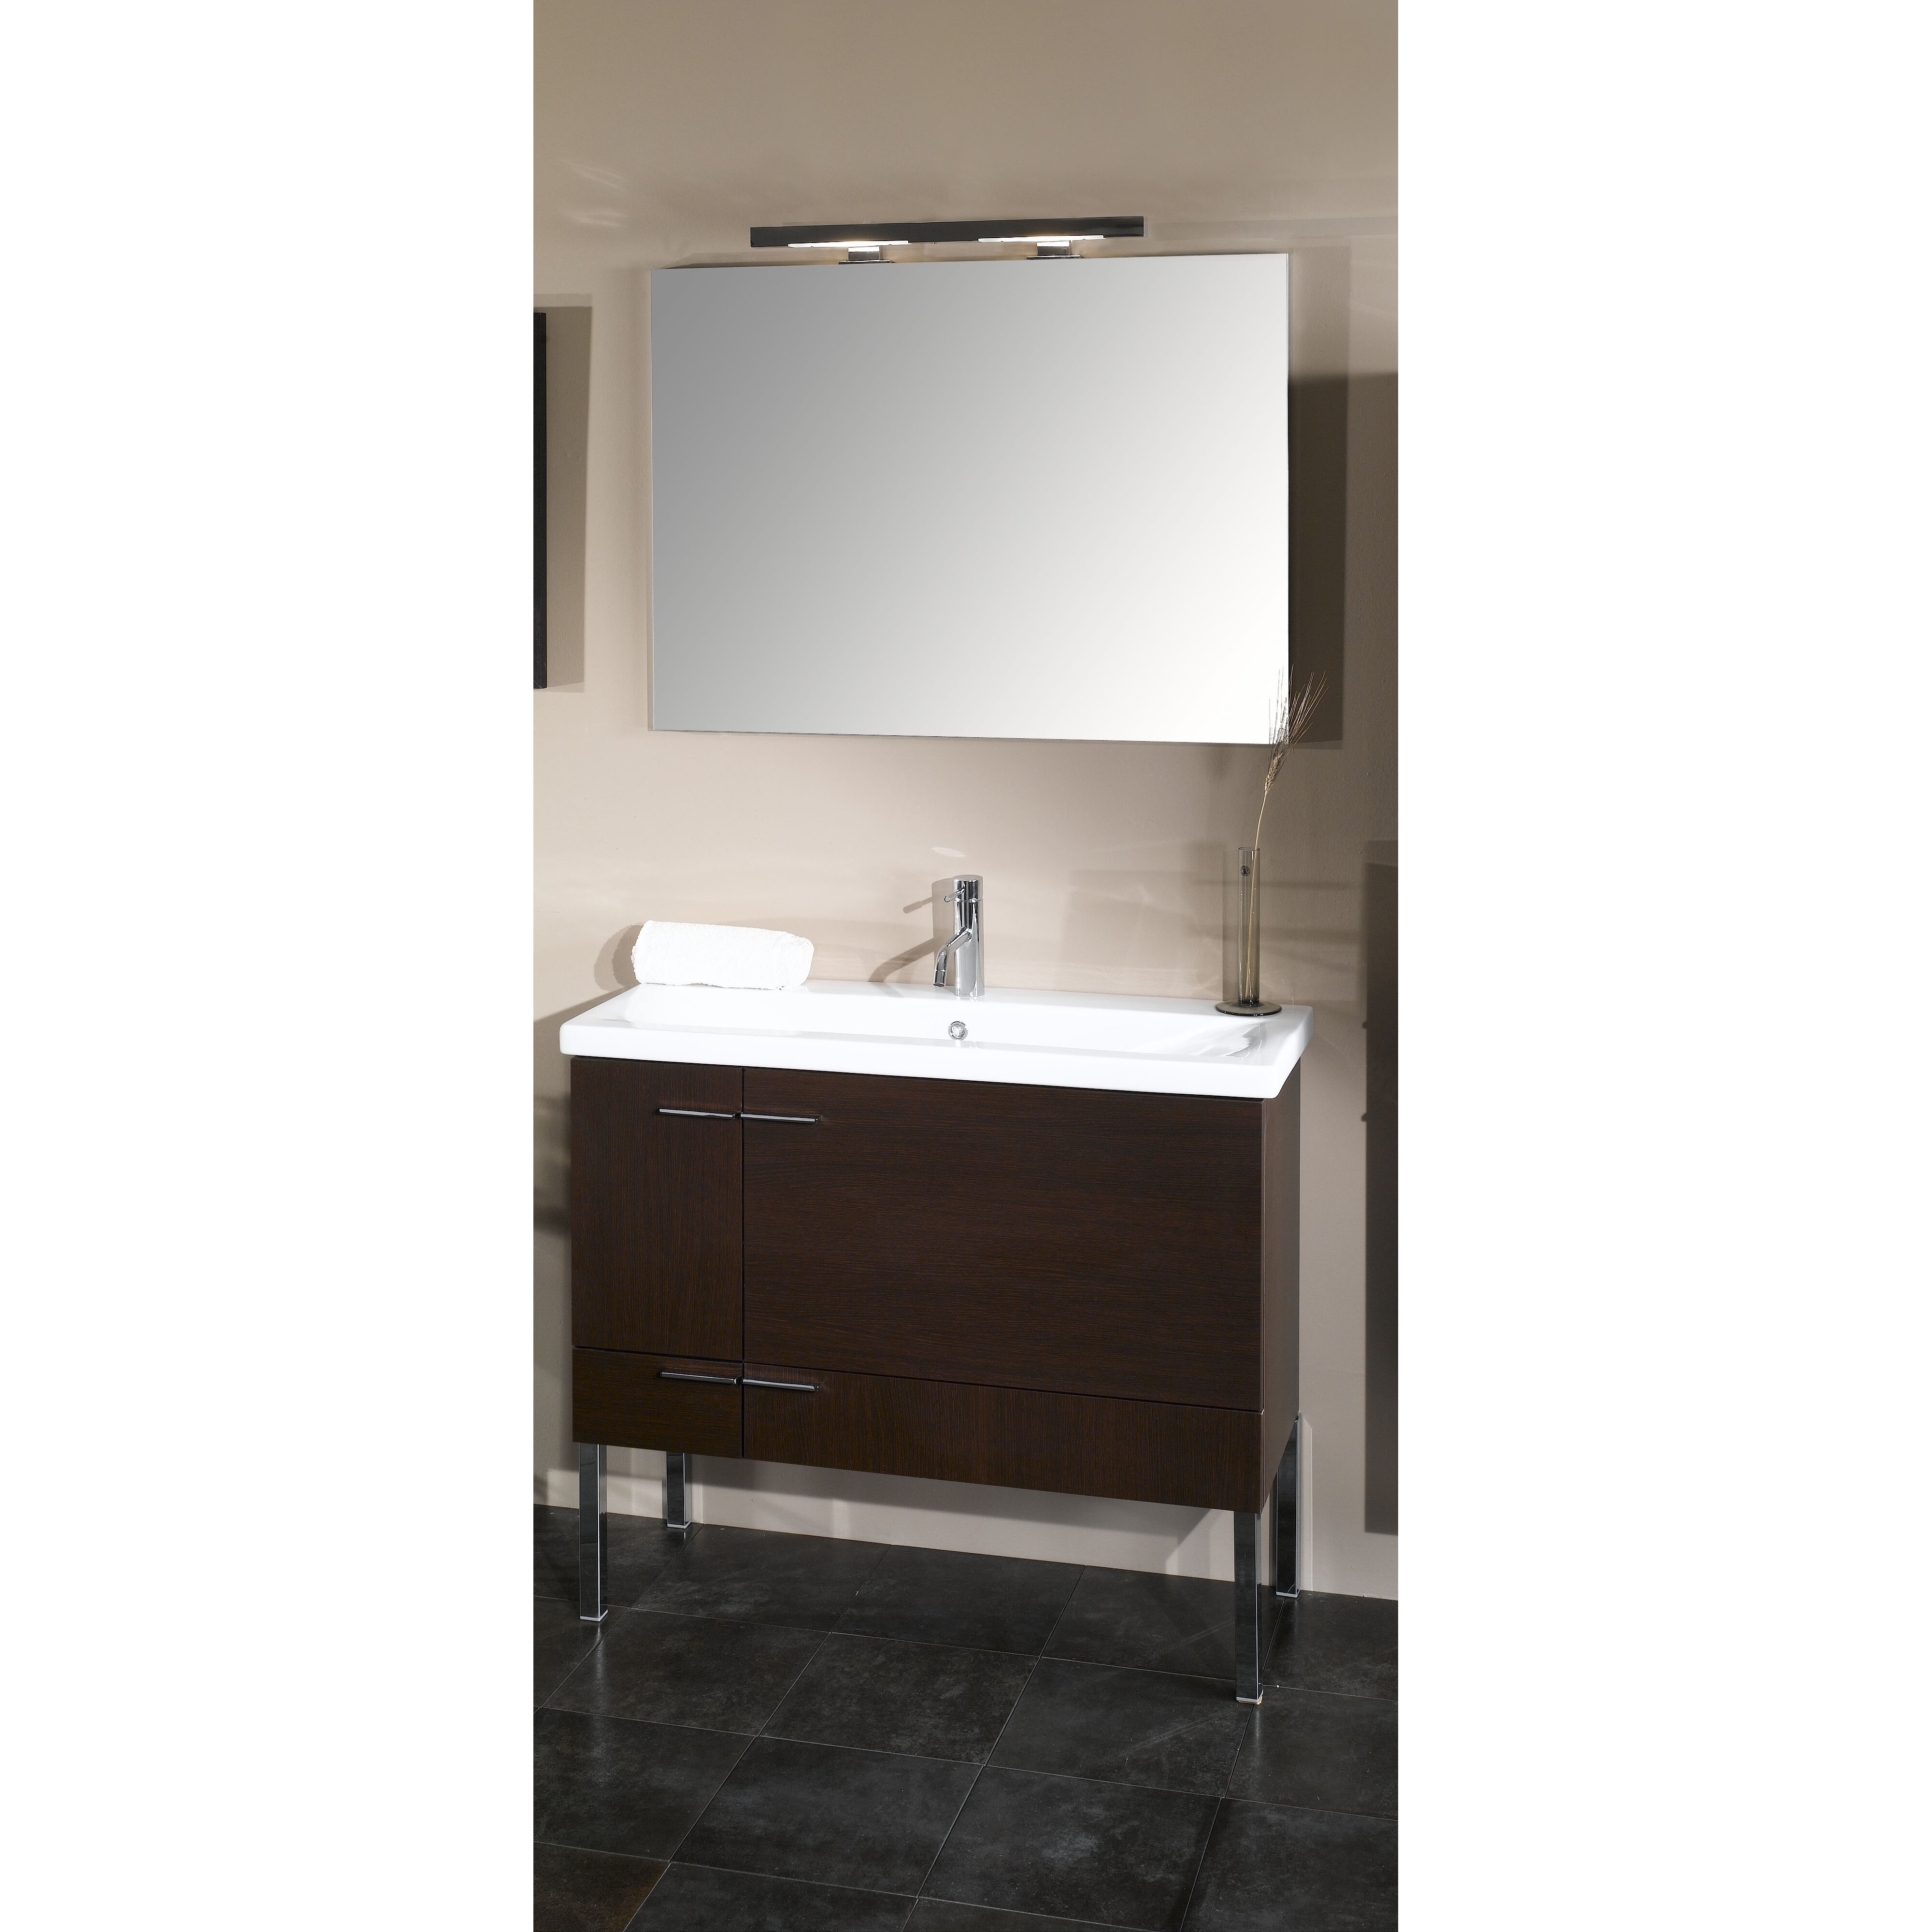 Simple 39 quot single wall mounted bathroom vanity set with